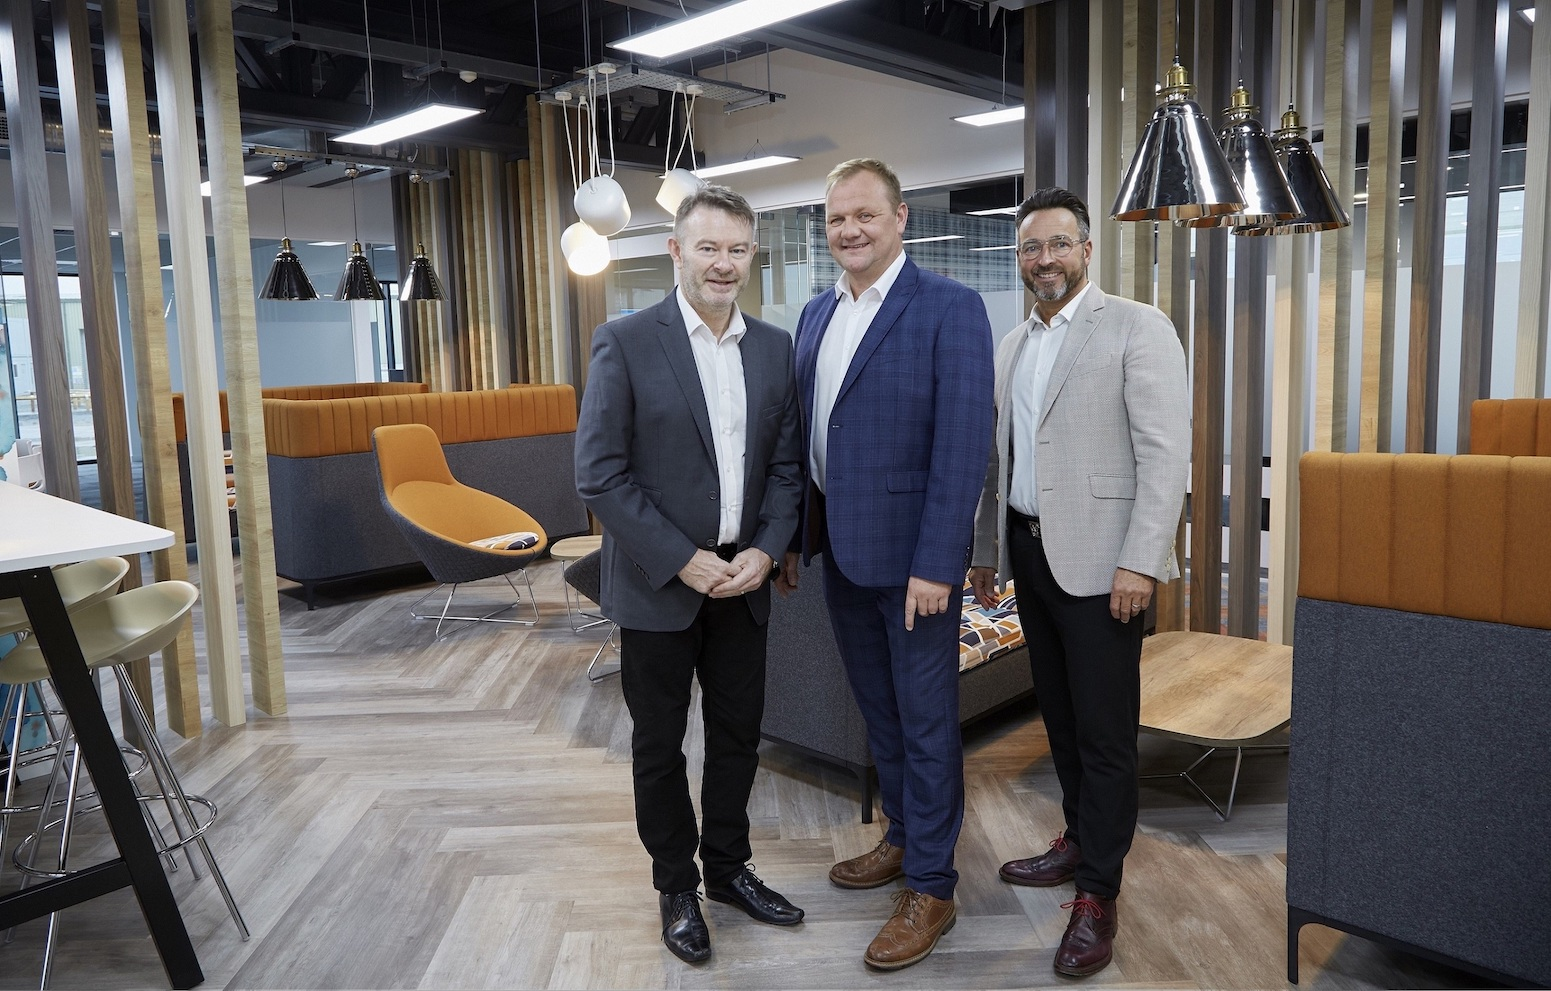 From right, Managing Director Gary Parker, Site and Health and Safety Director Paul Tansey and Finance Director John Drescher in the business lounge within Integra Buildings' showpiece new offices.